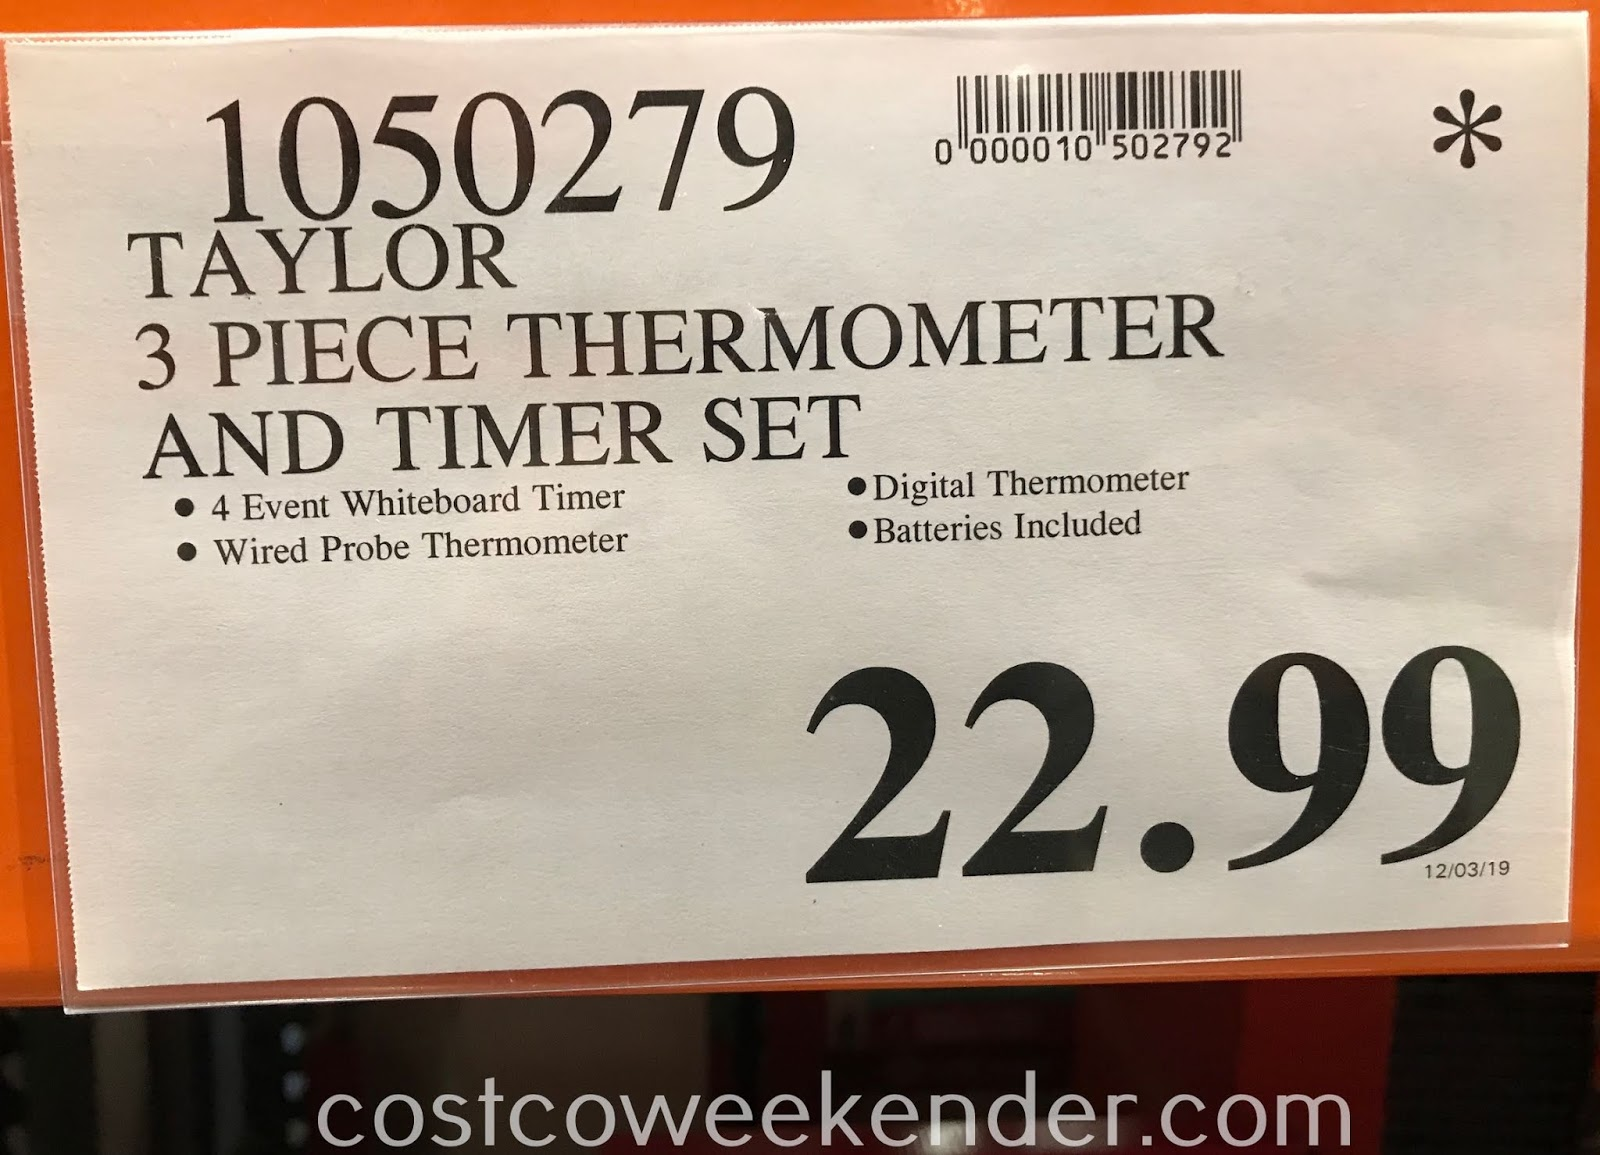 Deal for the Taylor 3-piece Thermometer and Timer Set at Costco